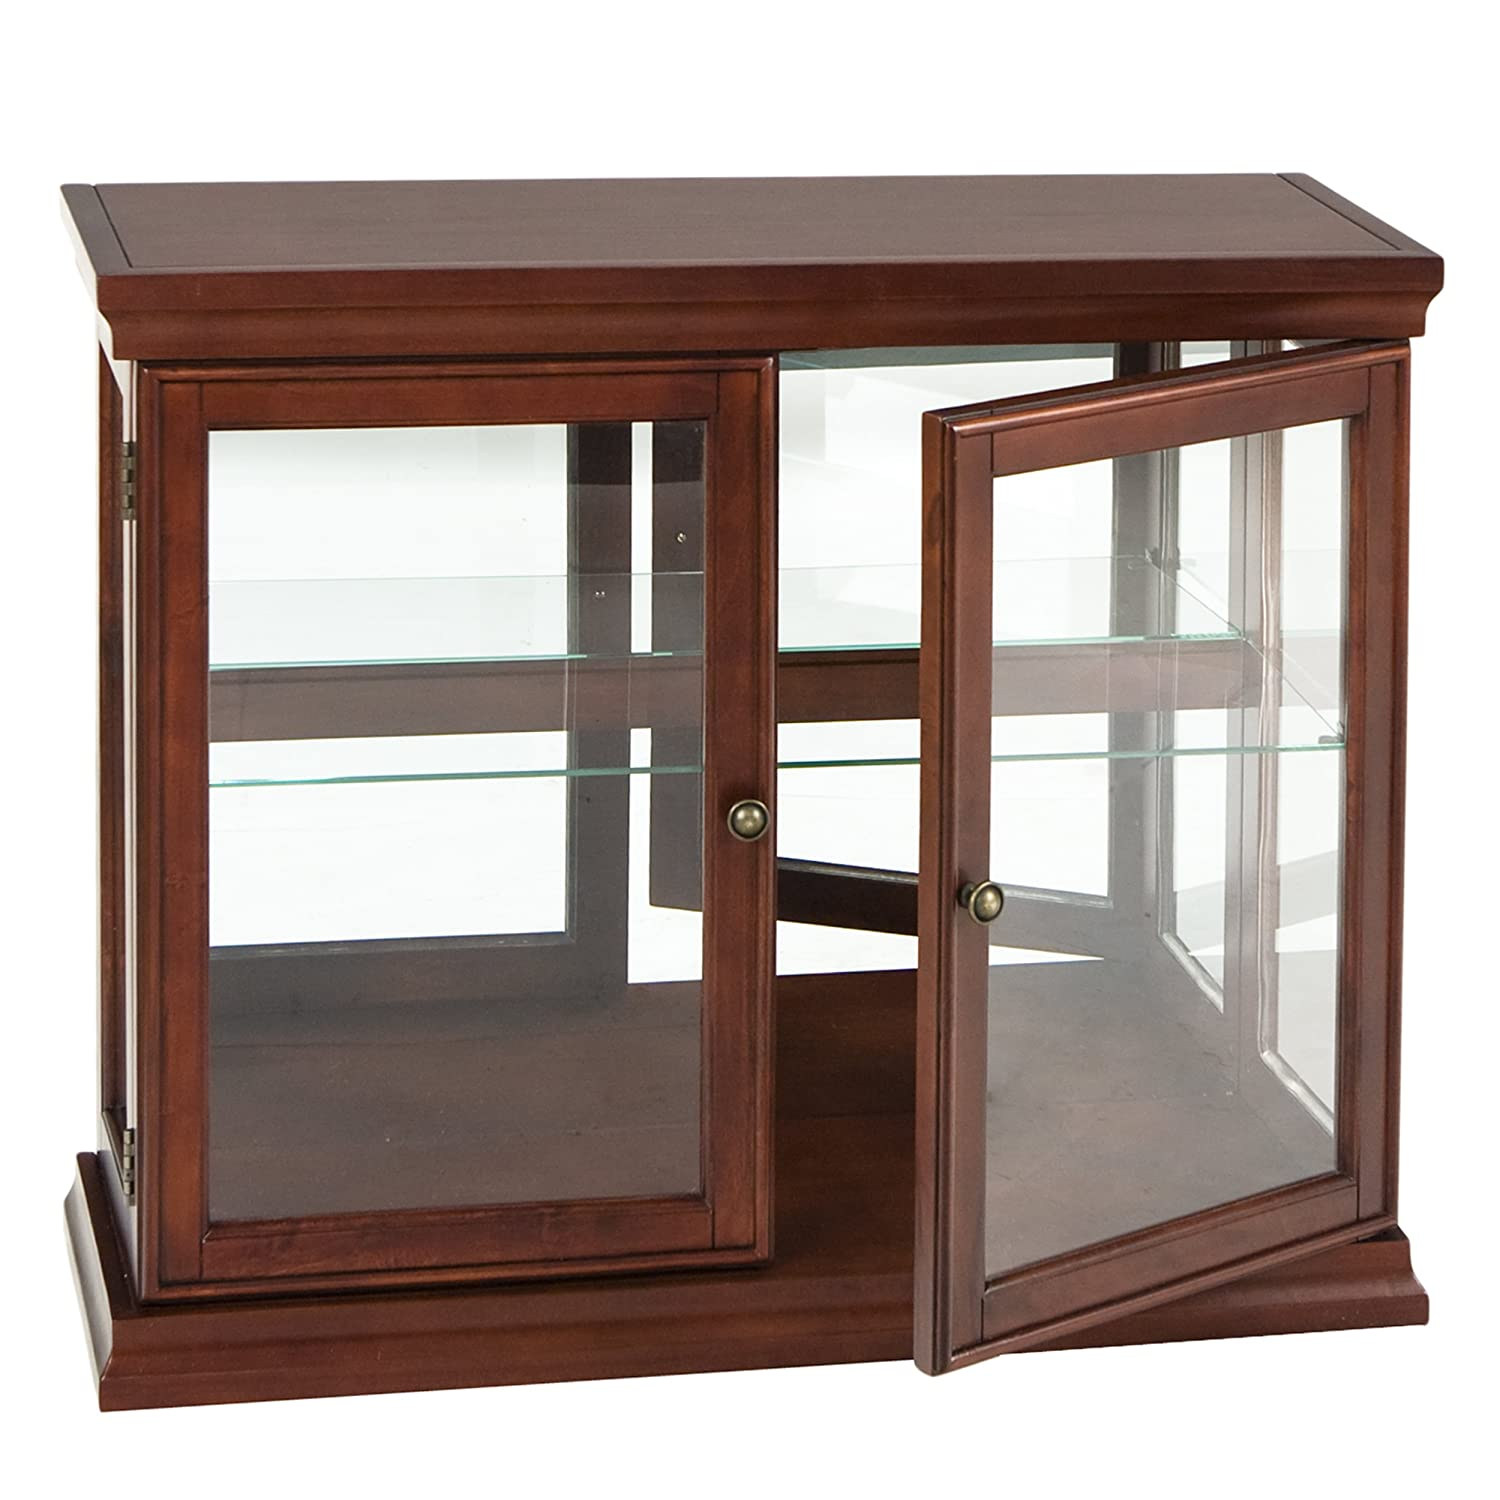 Southern Enterprises Double Door Curio with Mirrored Back Wall, Classic Mahogany Finish Inc. BE0868